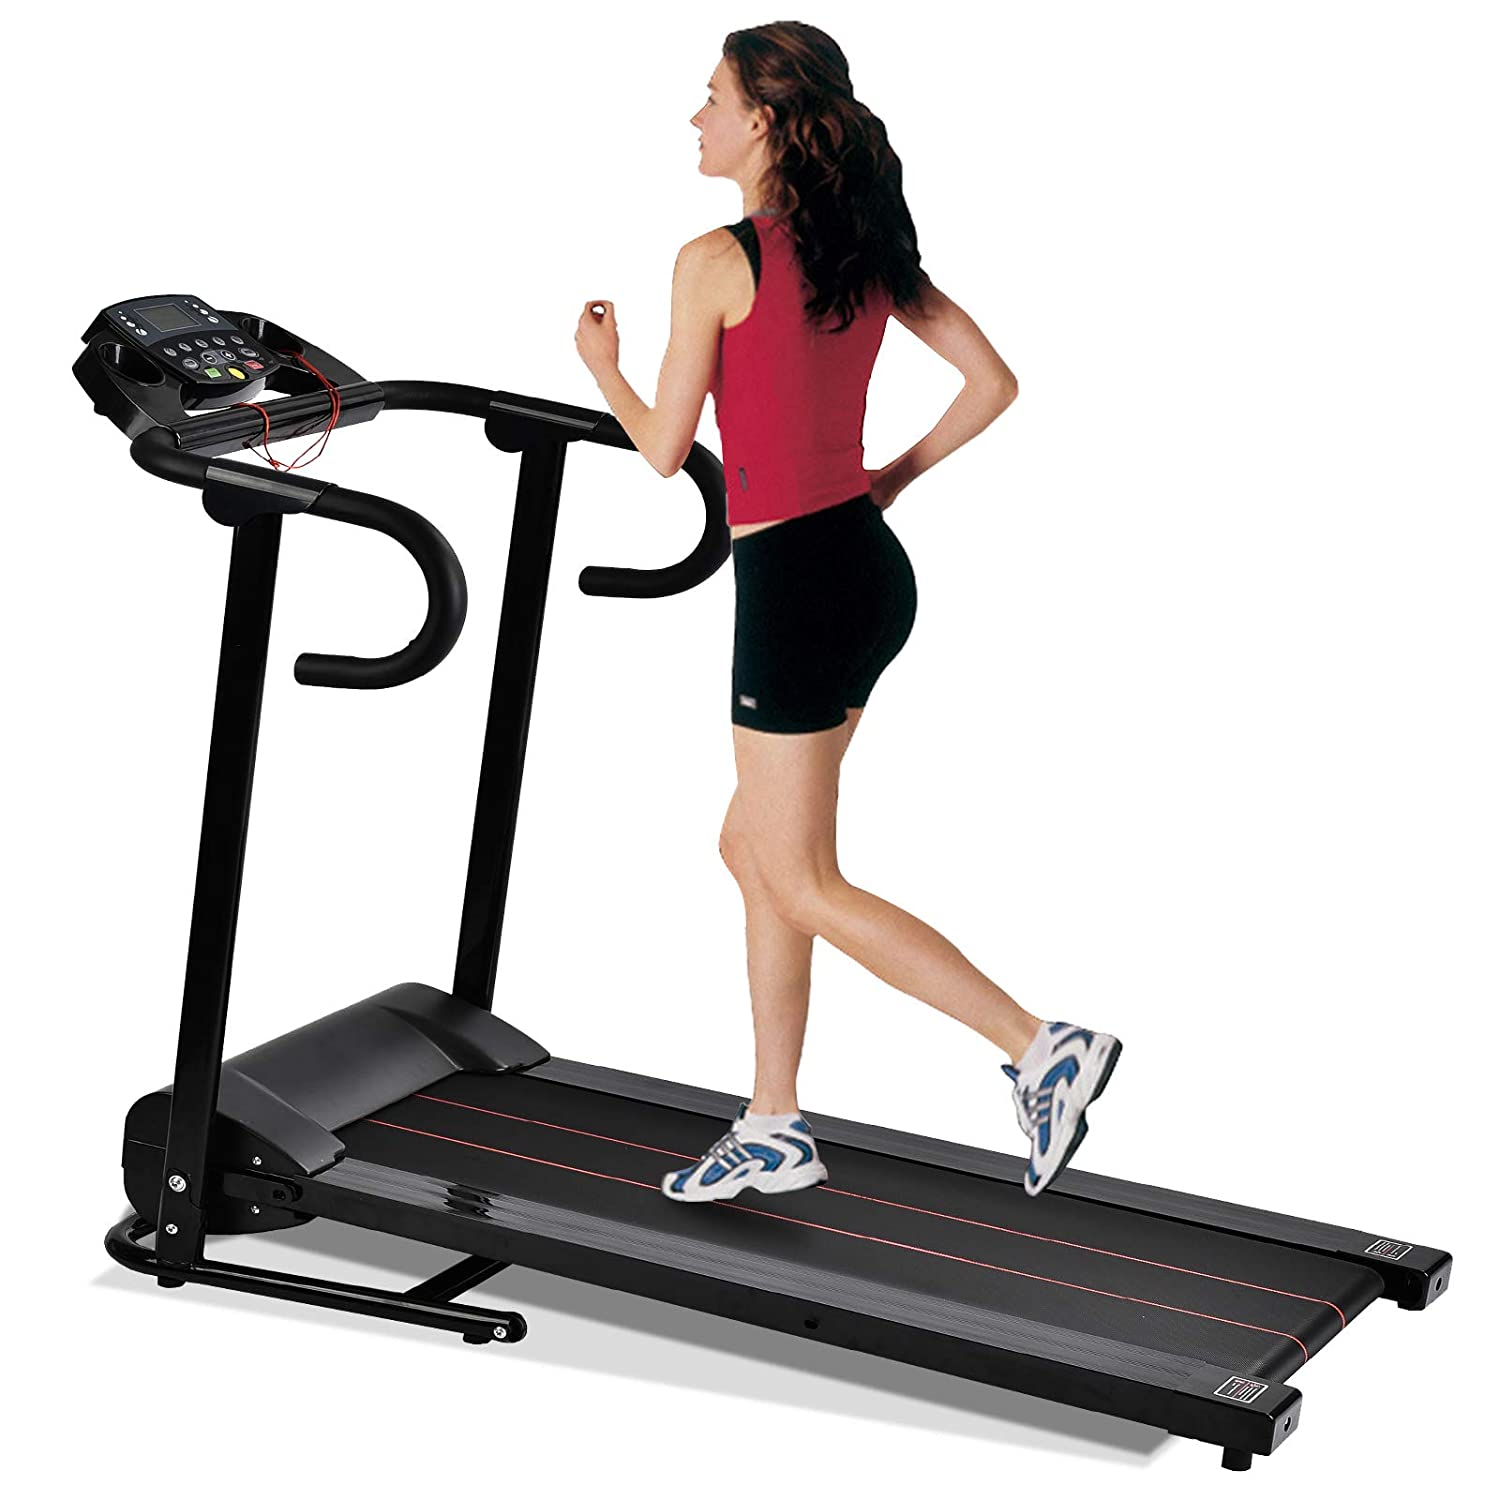 Murtisol 1100W Compact Electric Folding Treadmill with Safe Handle Bar and LCD Display Control $237.50 + Free S/H